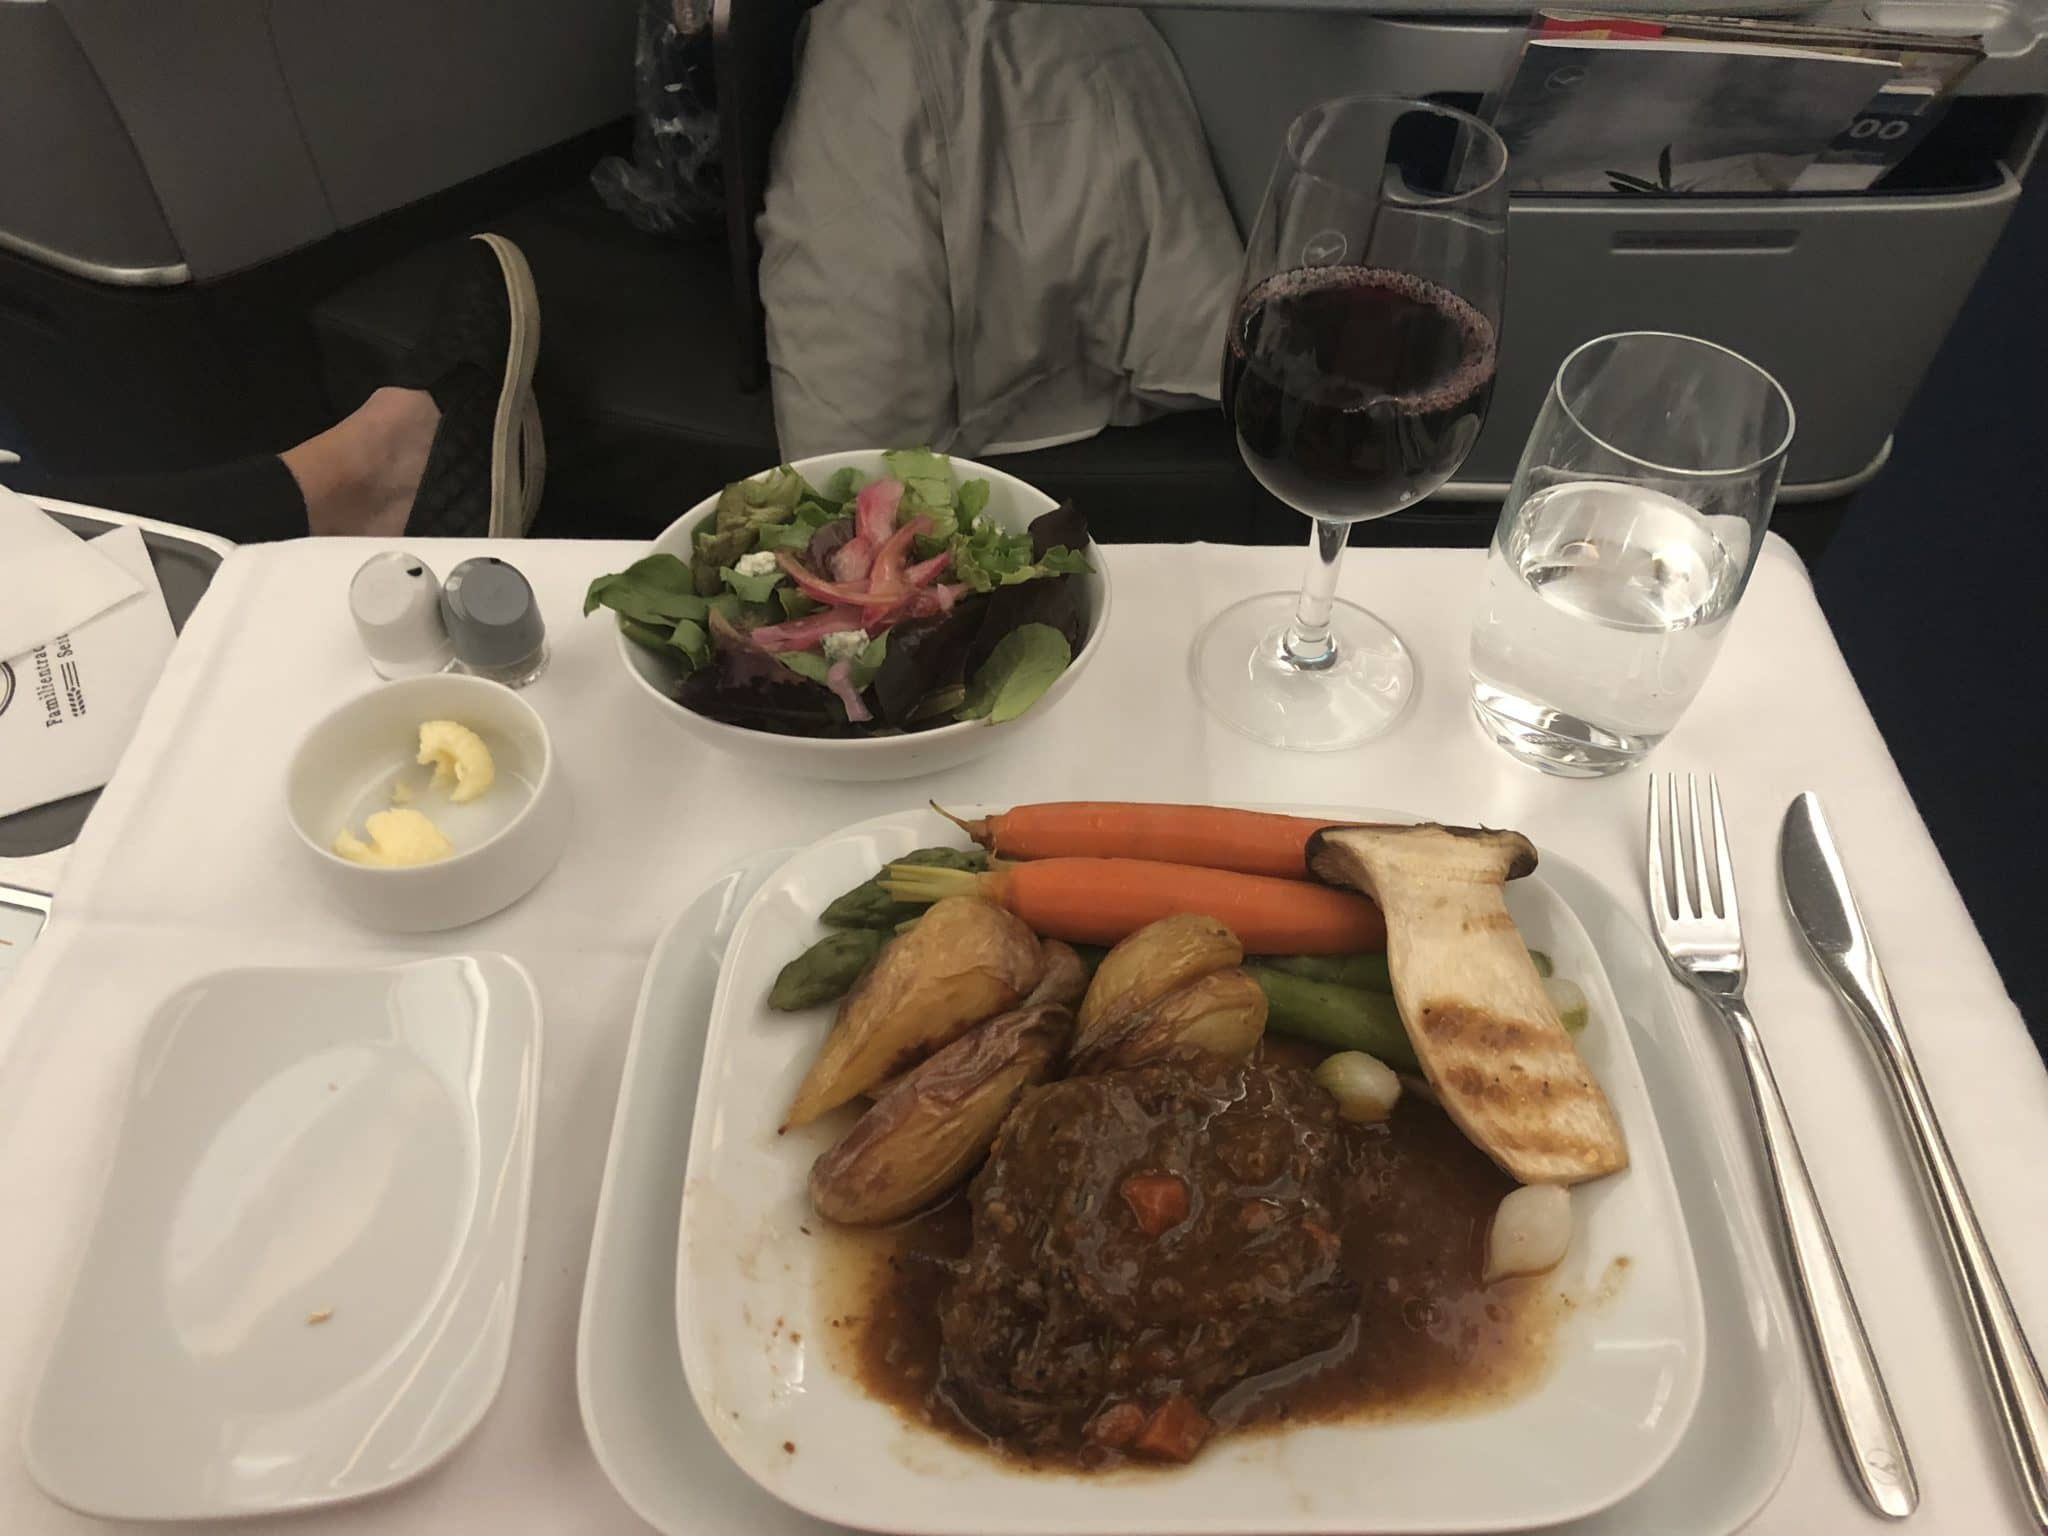 Lufthansa Business Class A350 kanadische Rinderbrust